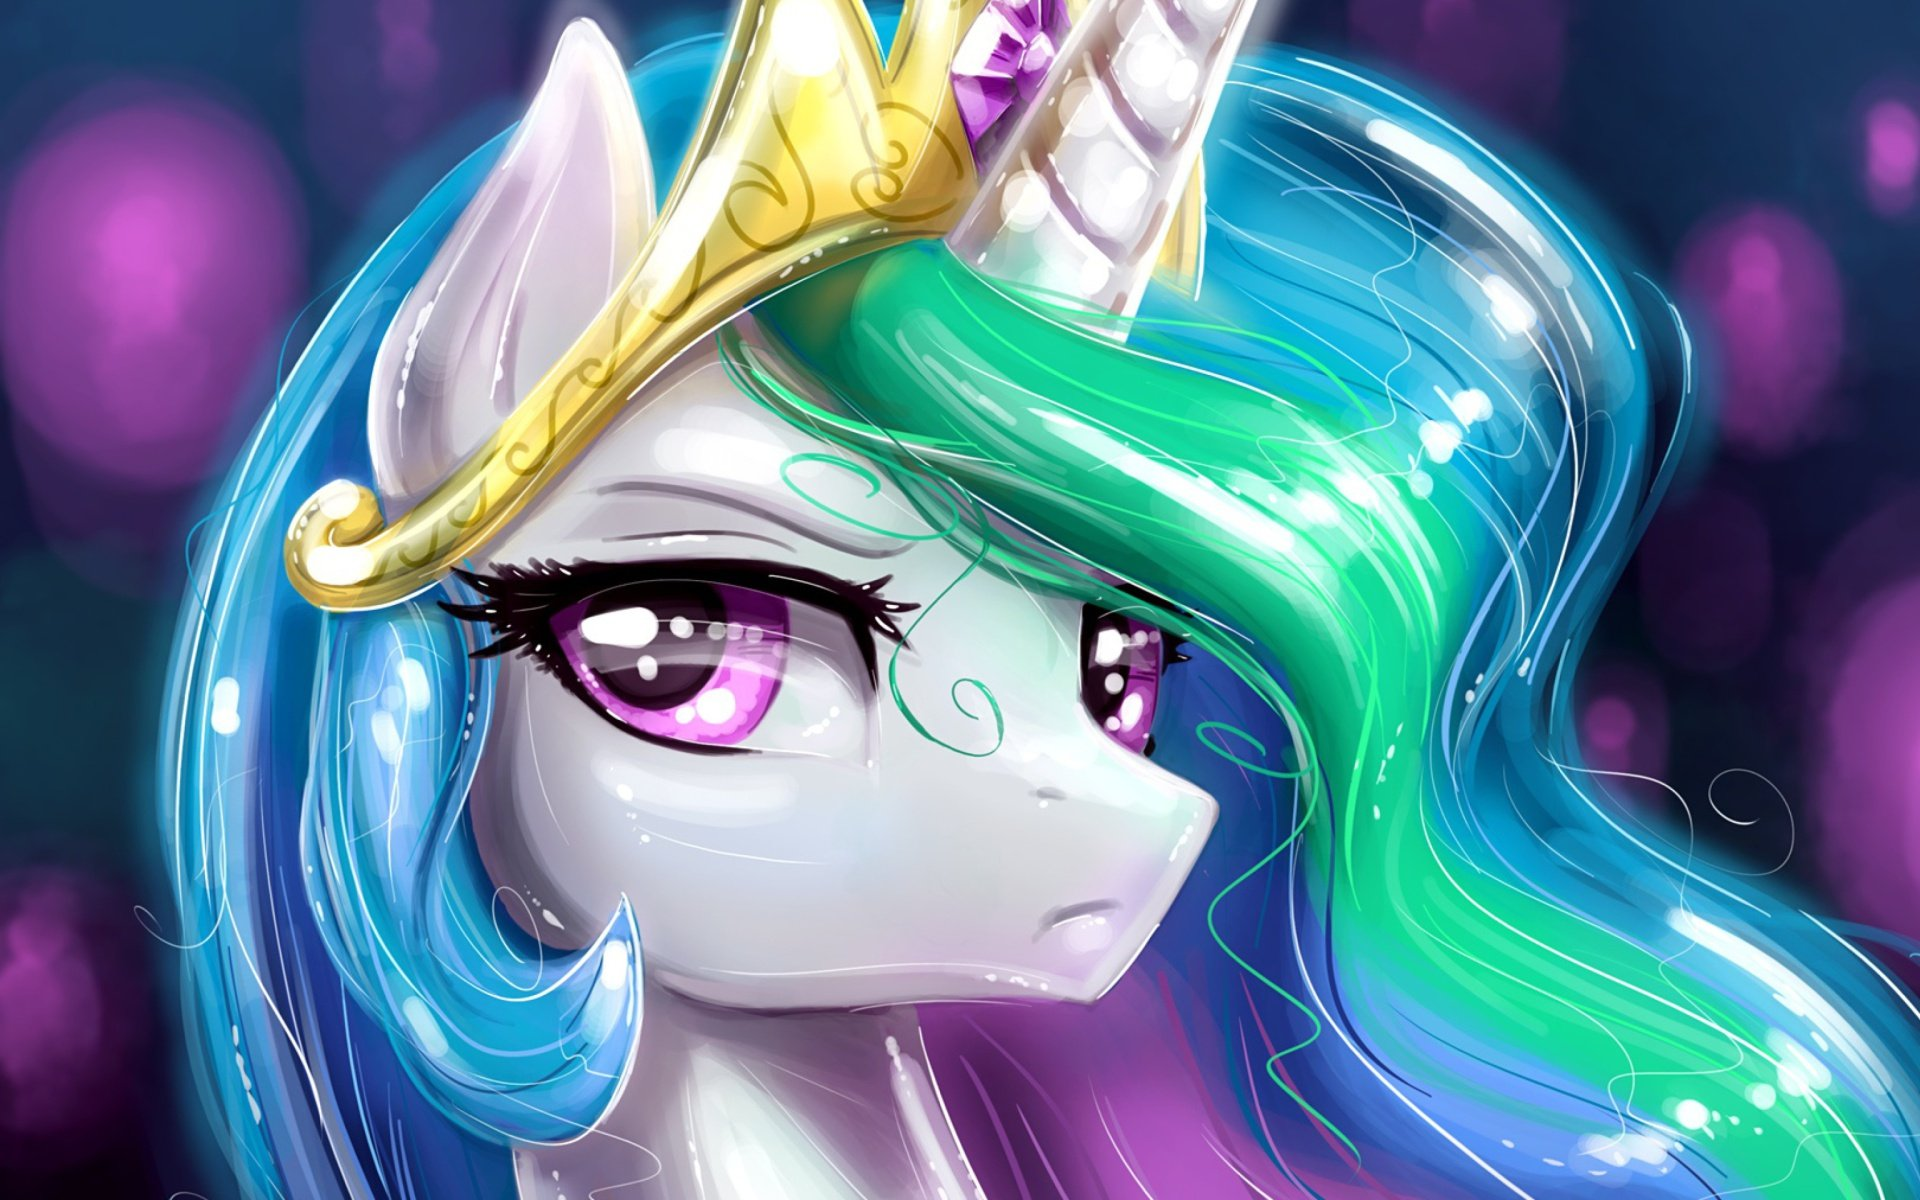 Unicorn Portrait 1920x1200 android wallpaper 1920x1200